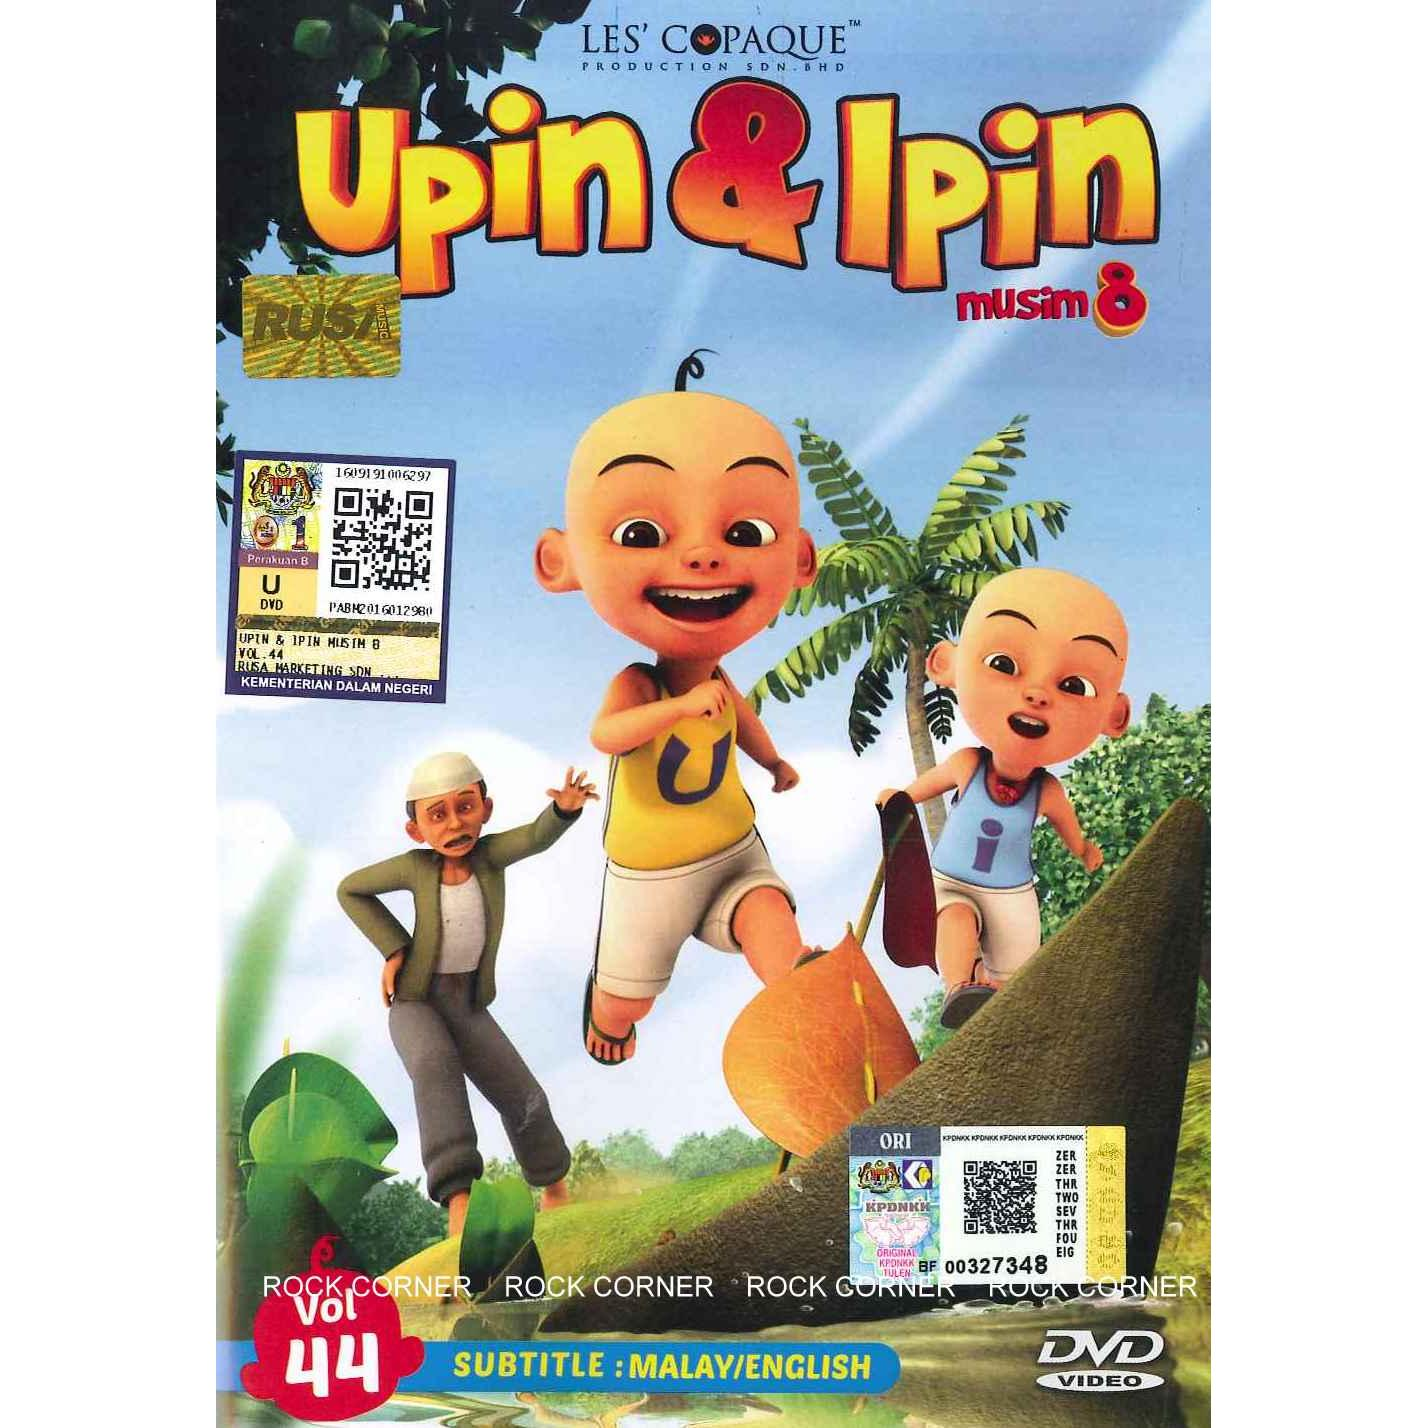 Within a few years, the Upin & Ipin series became an international success © www.thestar.com.my